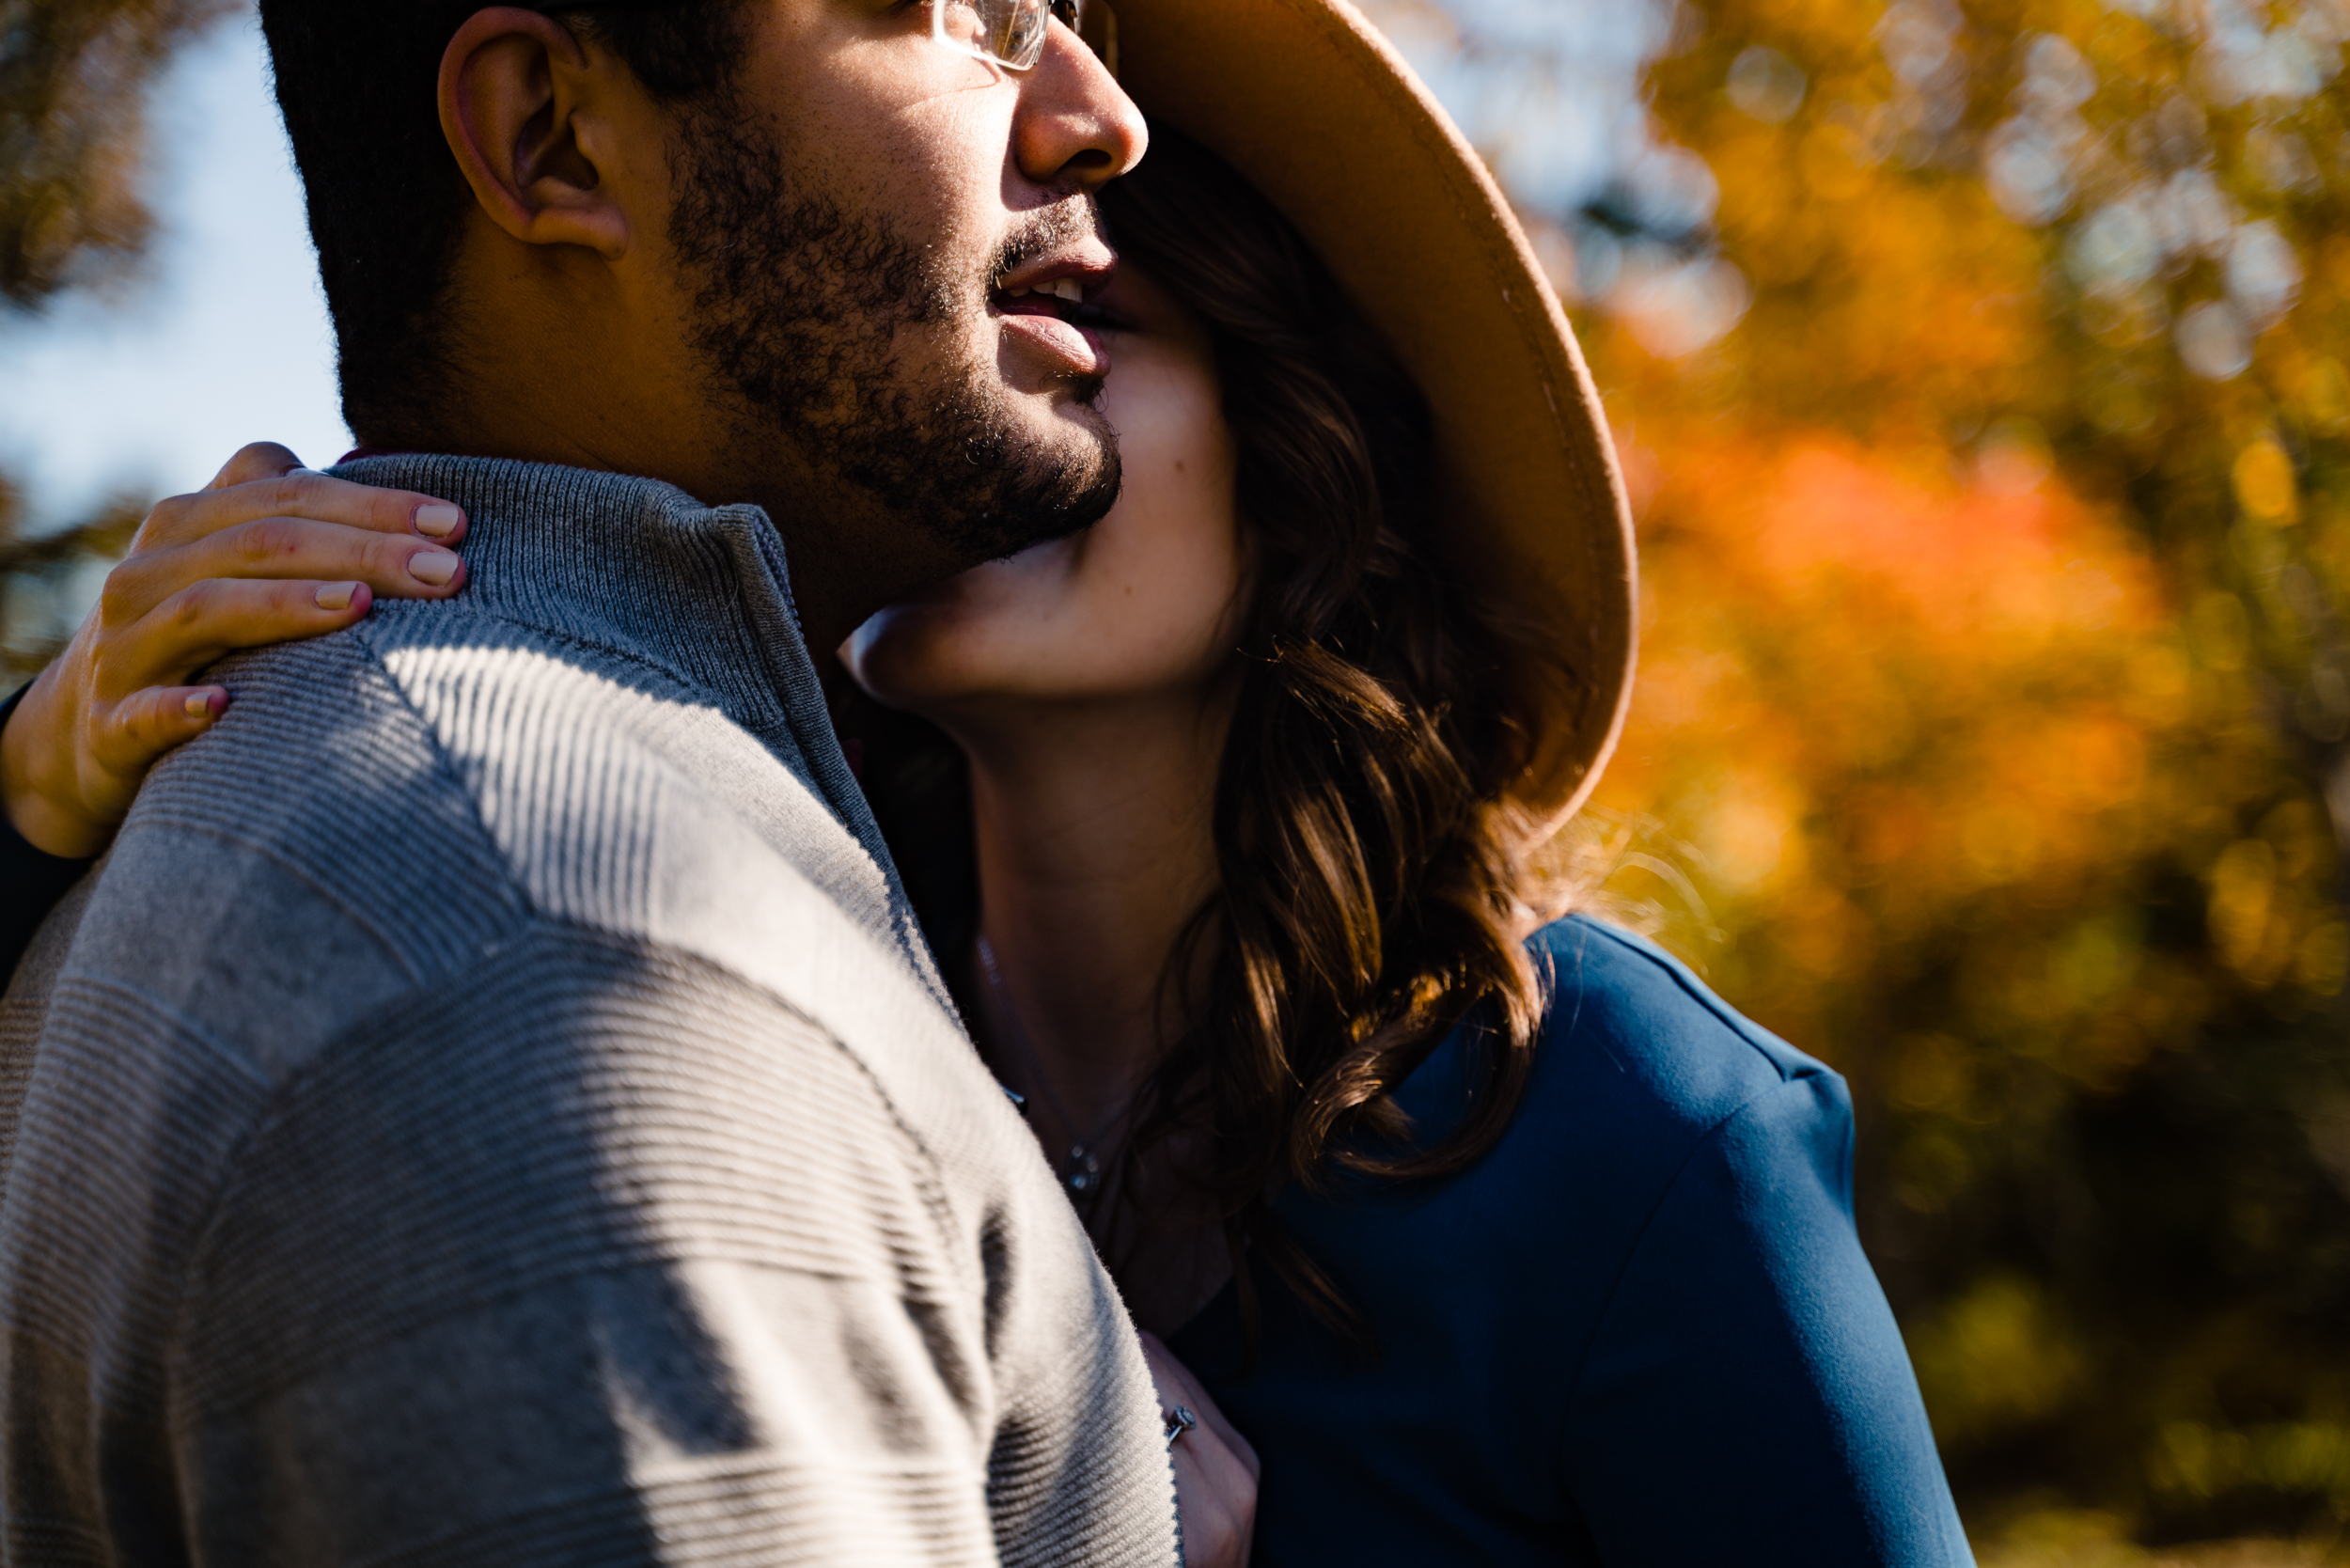 Wedding-halifax-engagement-nova-scotia-ottawa-ontario-pointpleasantpark-Fall-Autumn (4 of 53).jpg